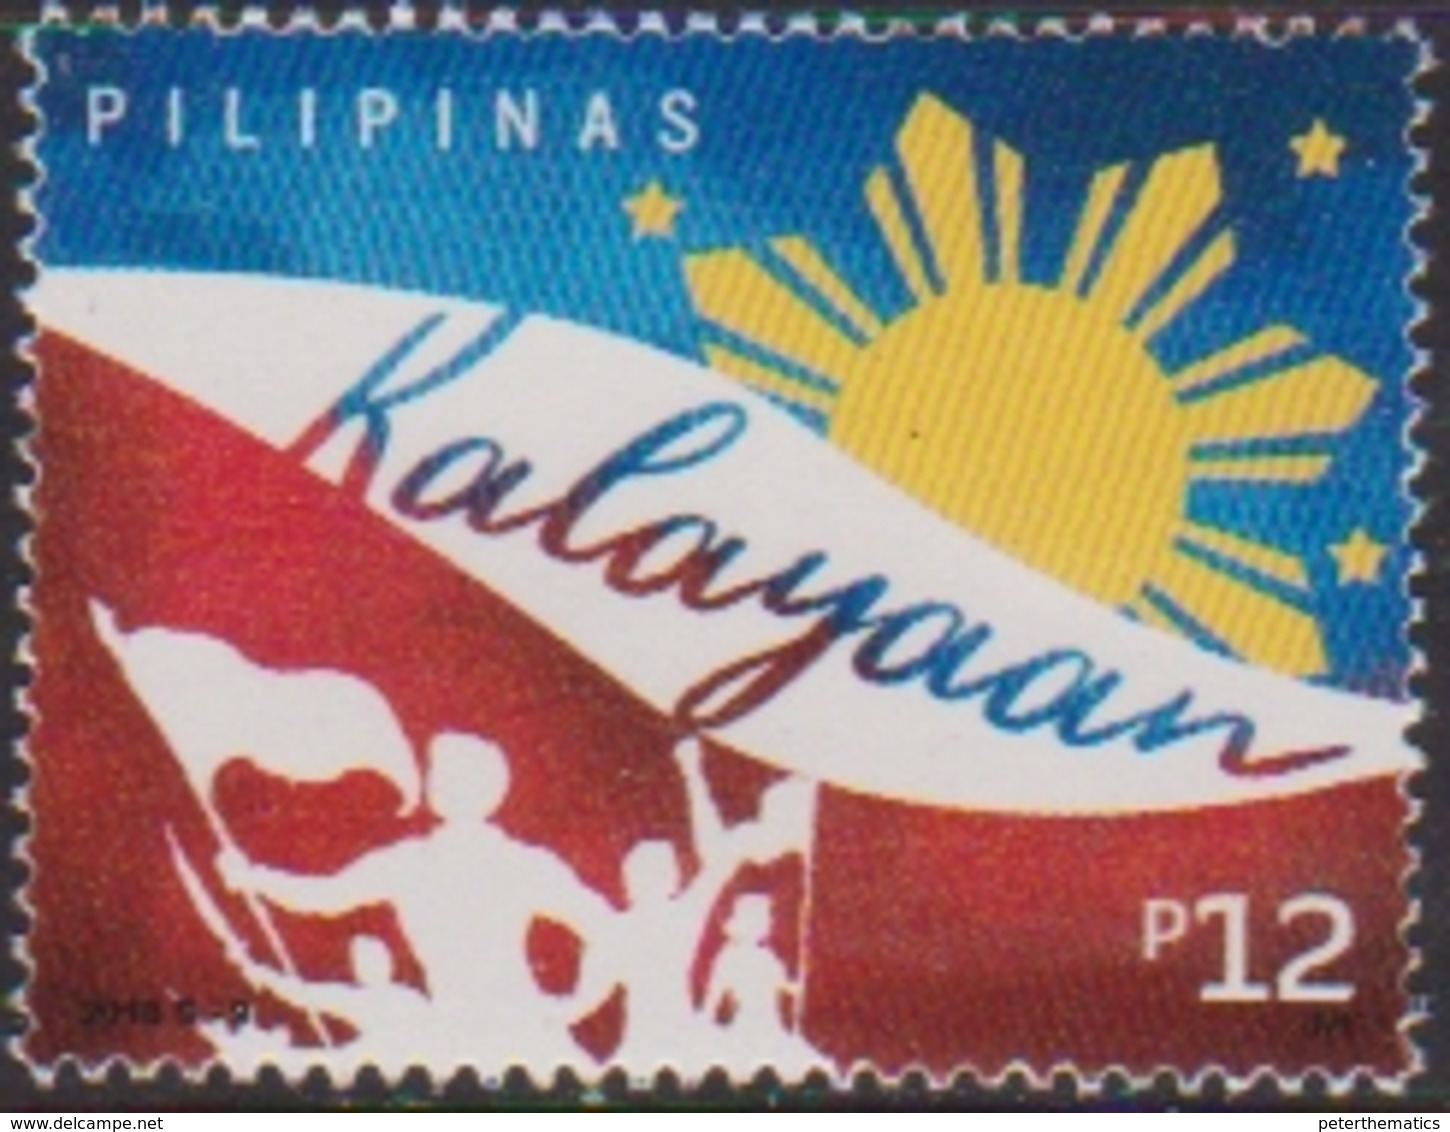 PHILIPPINES, 2018, MNH, INDEPENDENCE, FLAGS,1v - Stamps